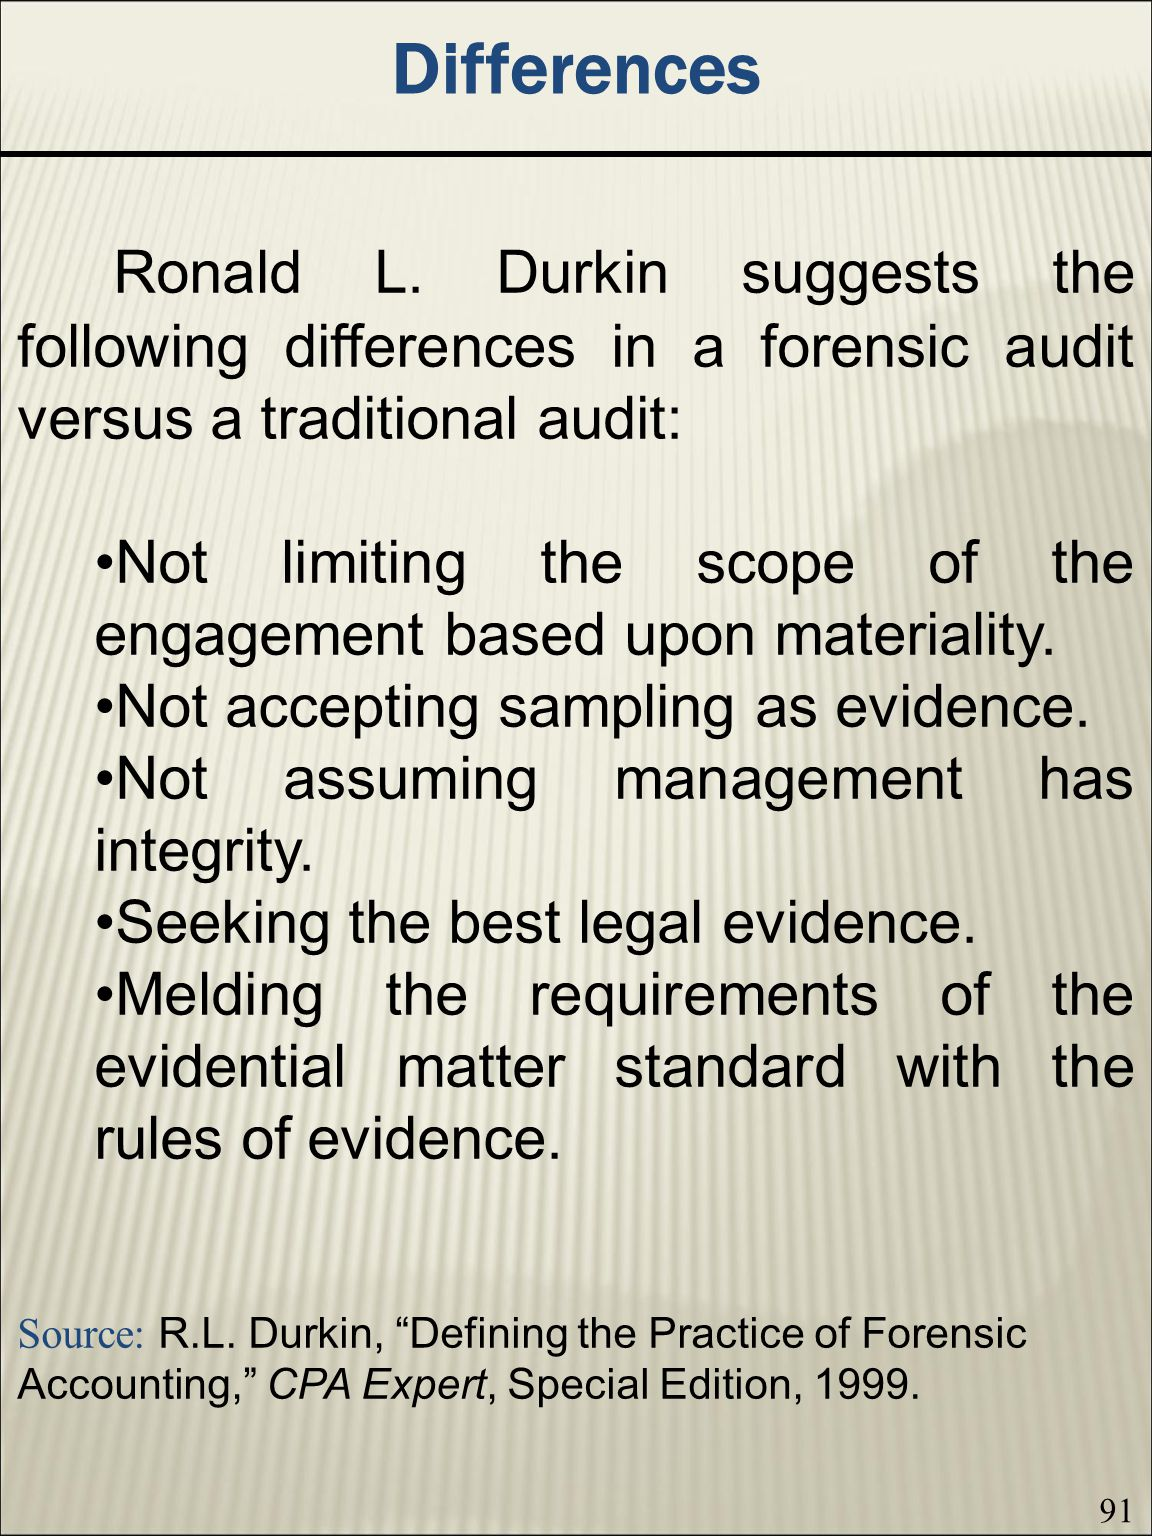 Differences Ronald L. Durkin suggests the following differences in a forensic audit versus a traditional audit: